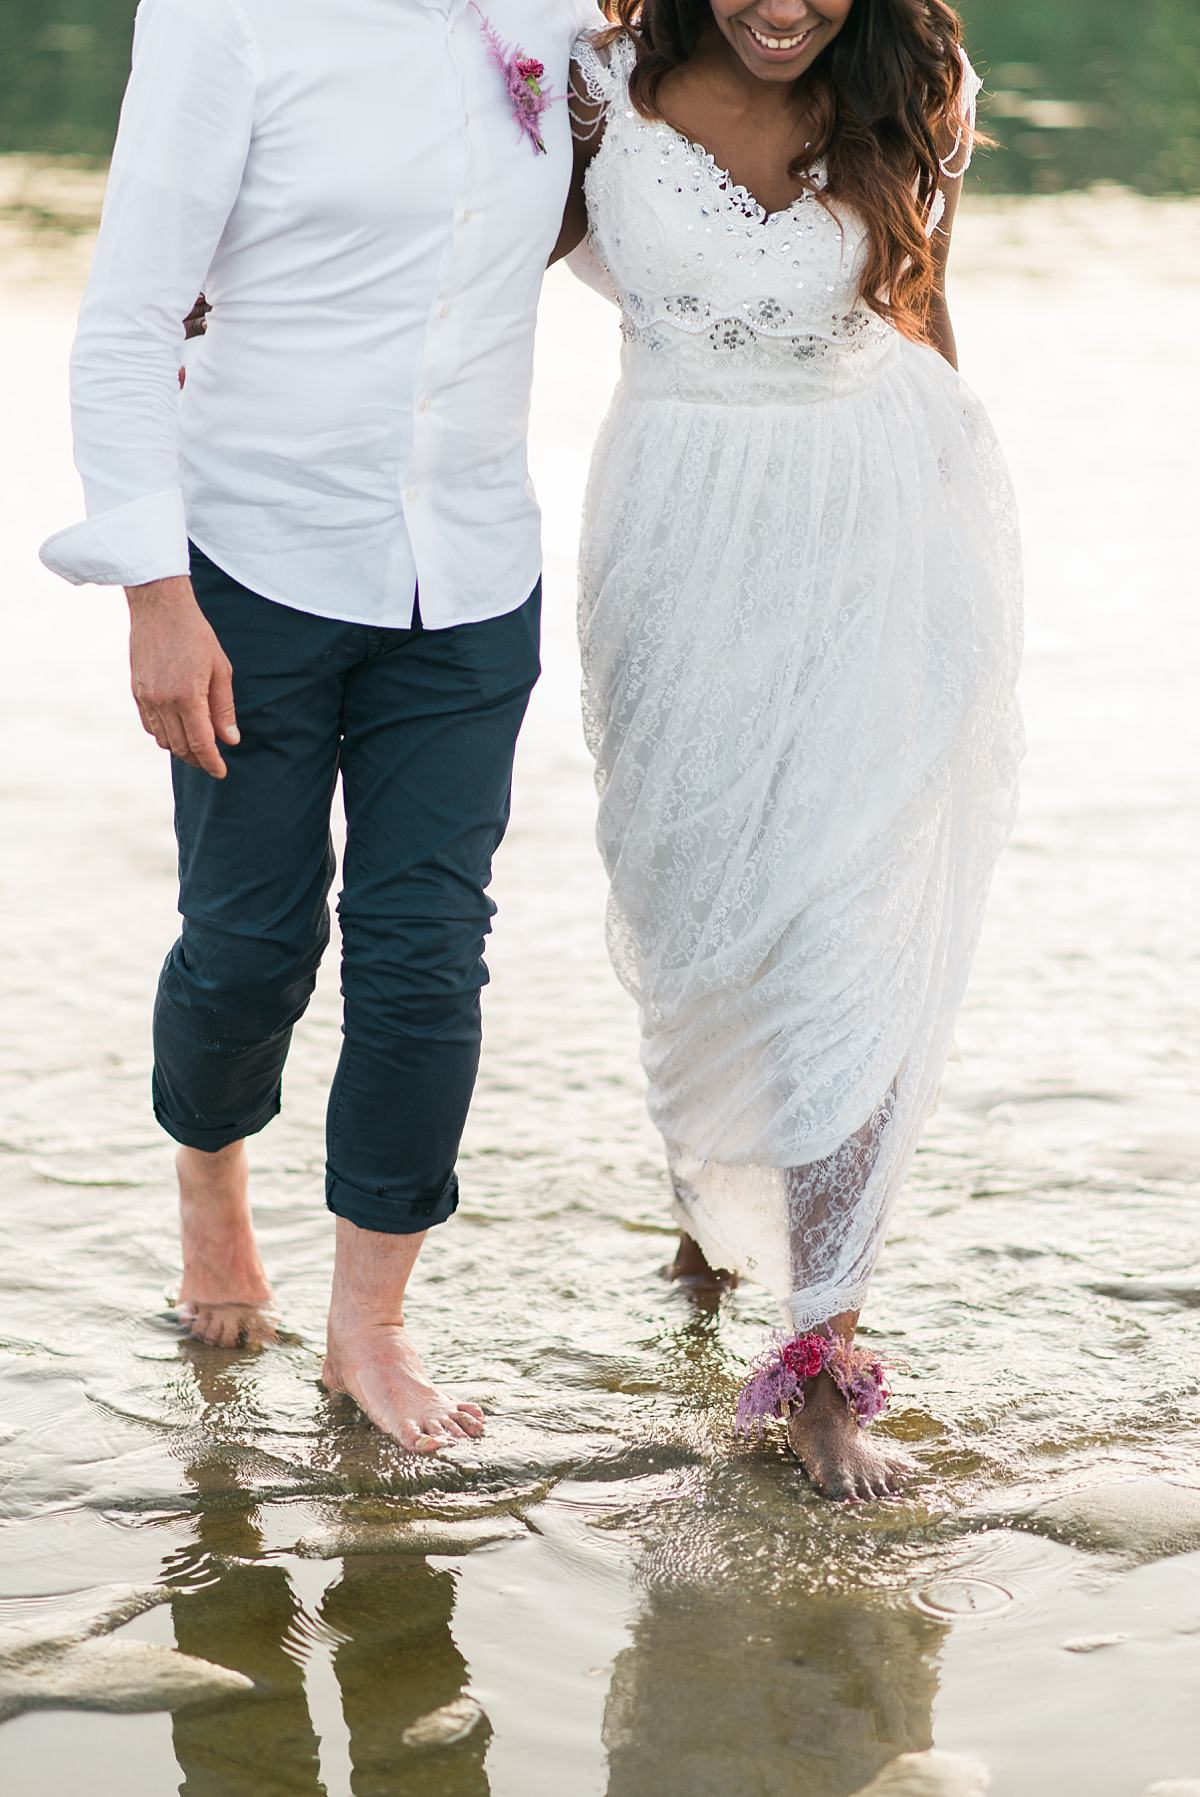 wedding-inspiration-on-the-beach_1568